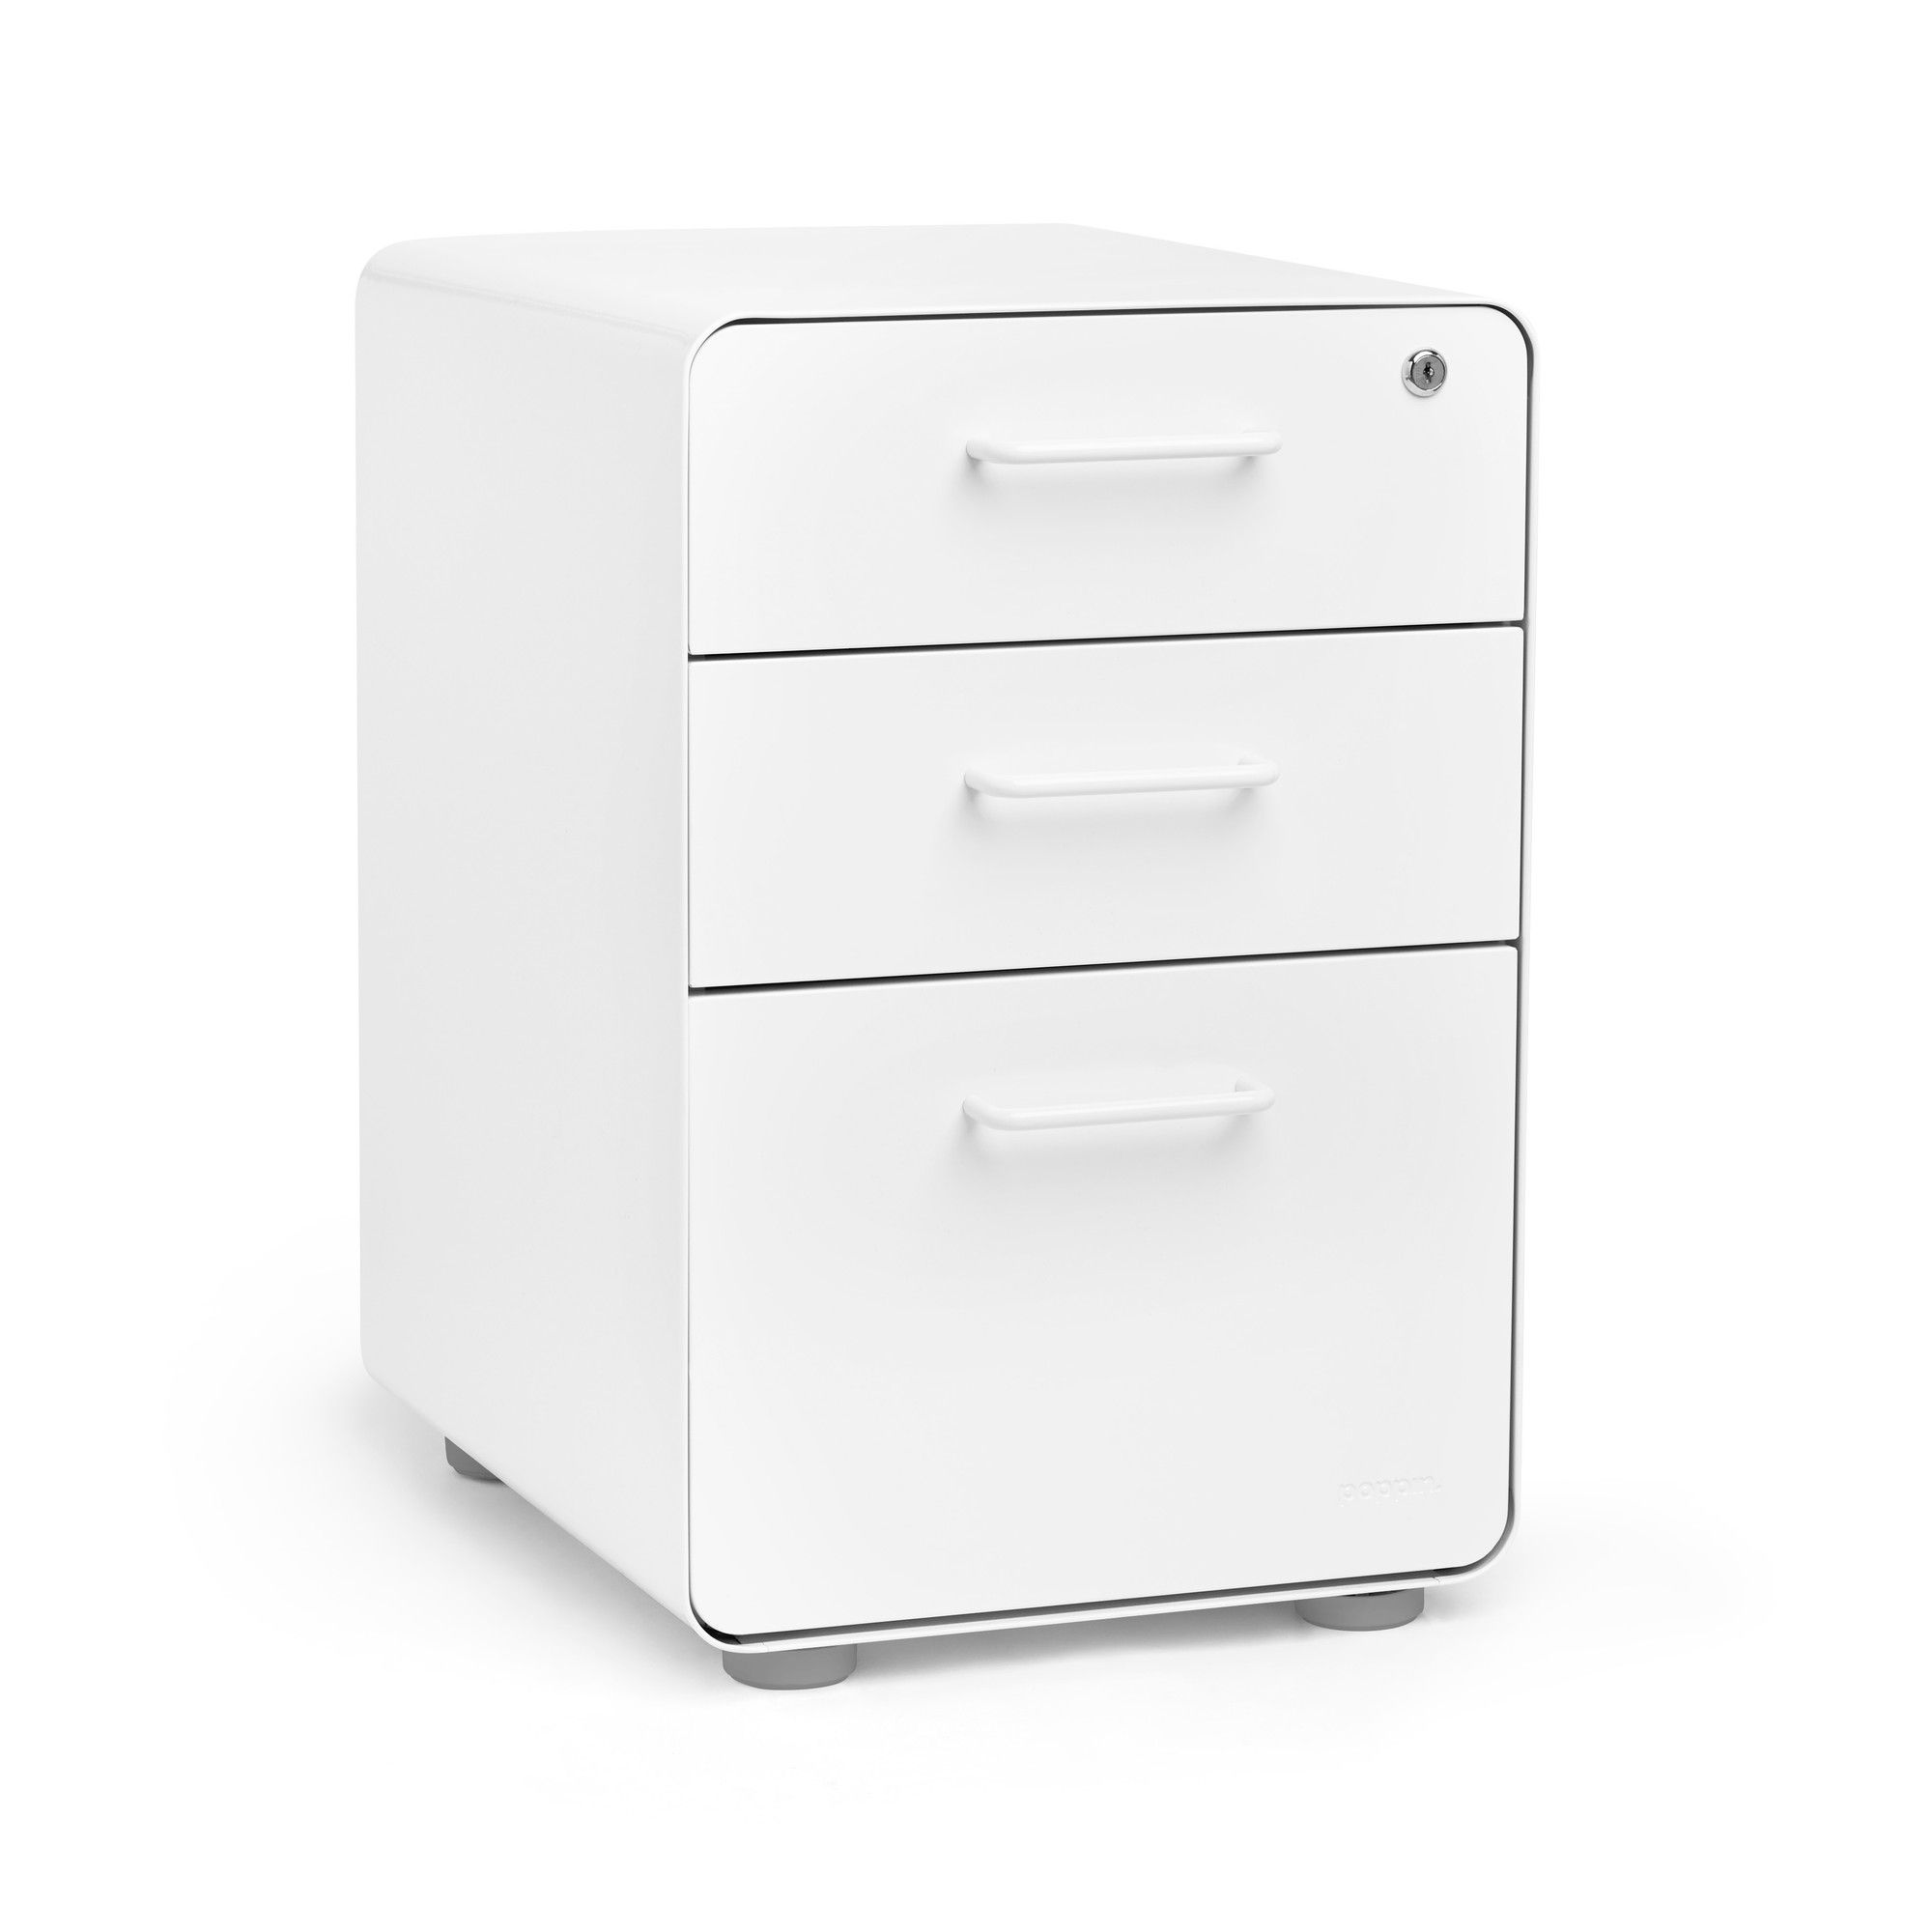 4e65001ce3b Poppin® White Stow 3-drawer File Cabinet